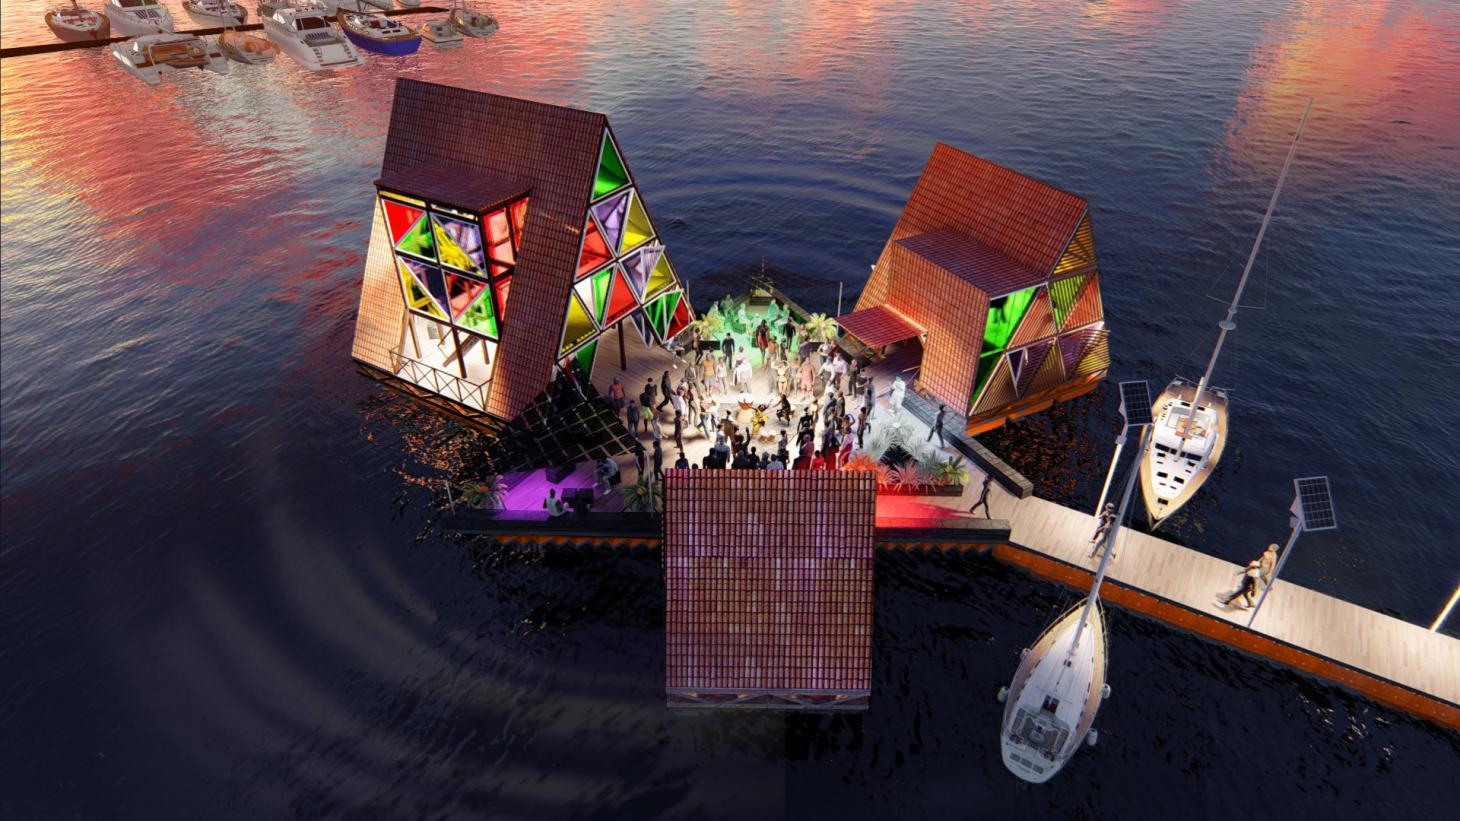 A floating music hub is anchored off the coast of Cape Verde